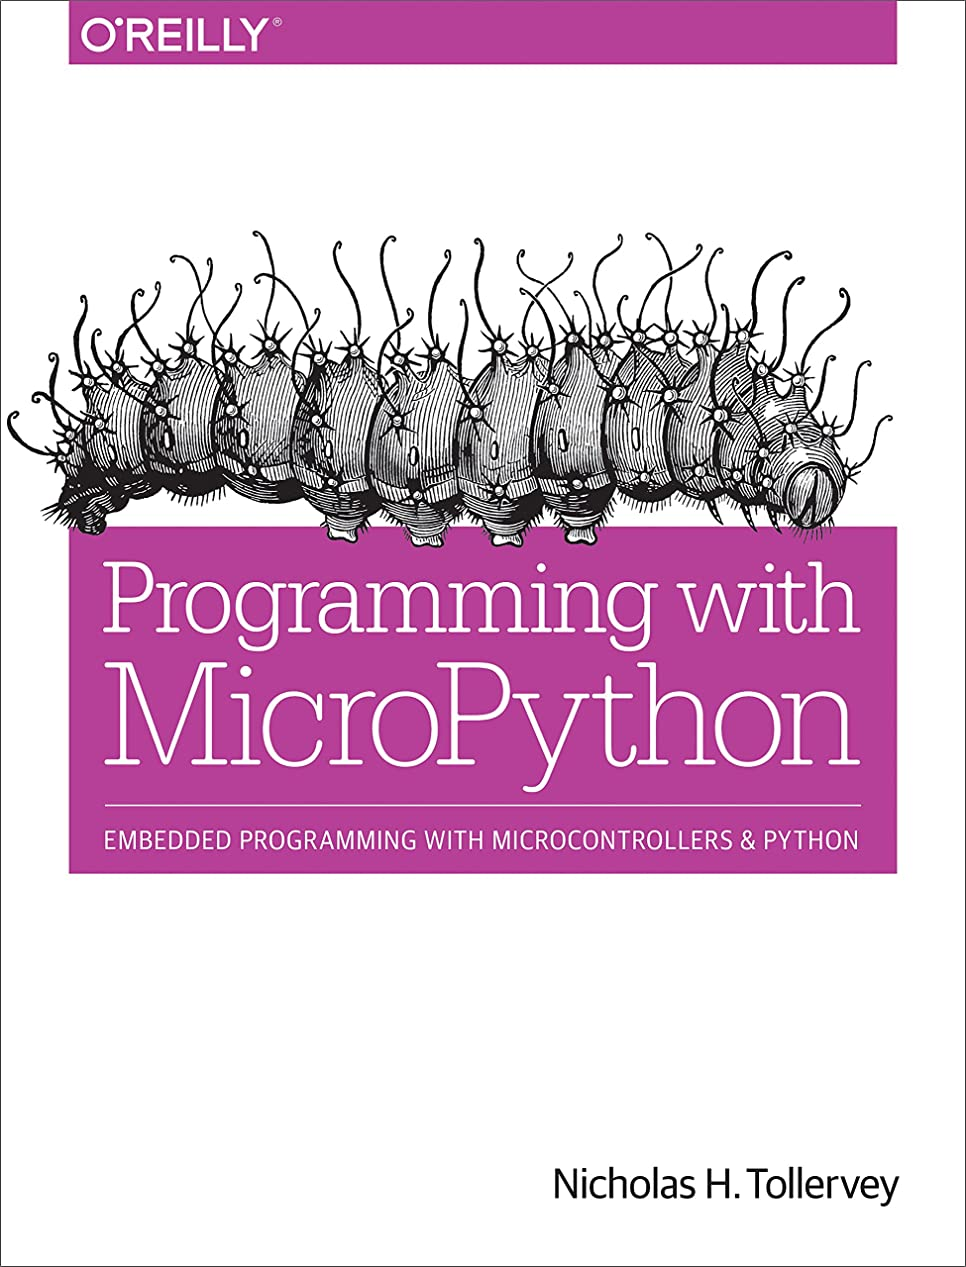 条件付き評価一般的にProgramming with MicroPython: Embedded Programming with Microcontrollers and Python (English Edition)